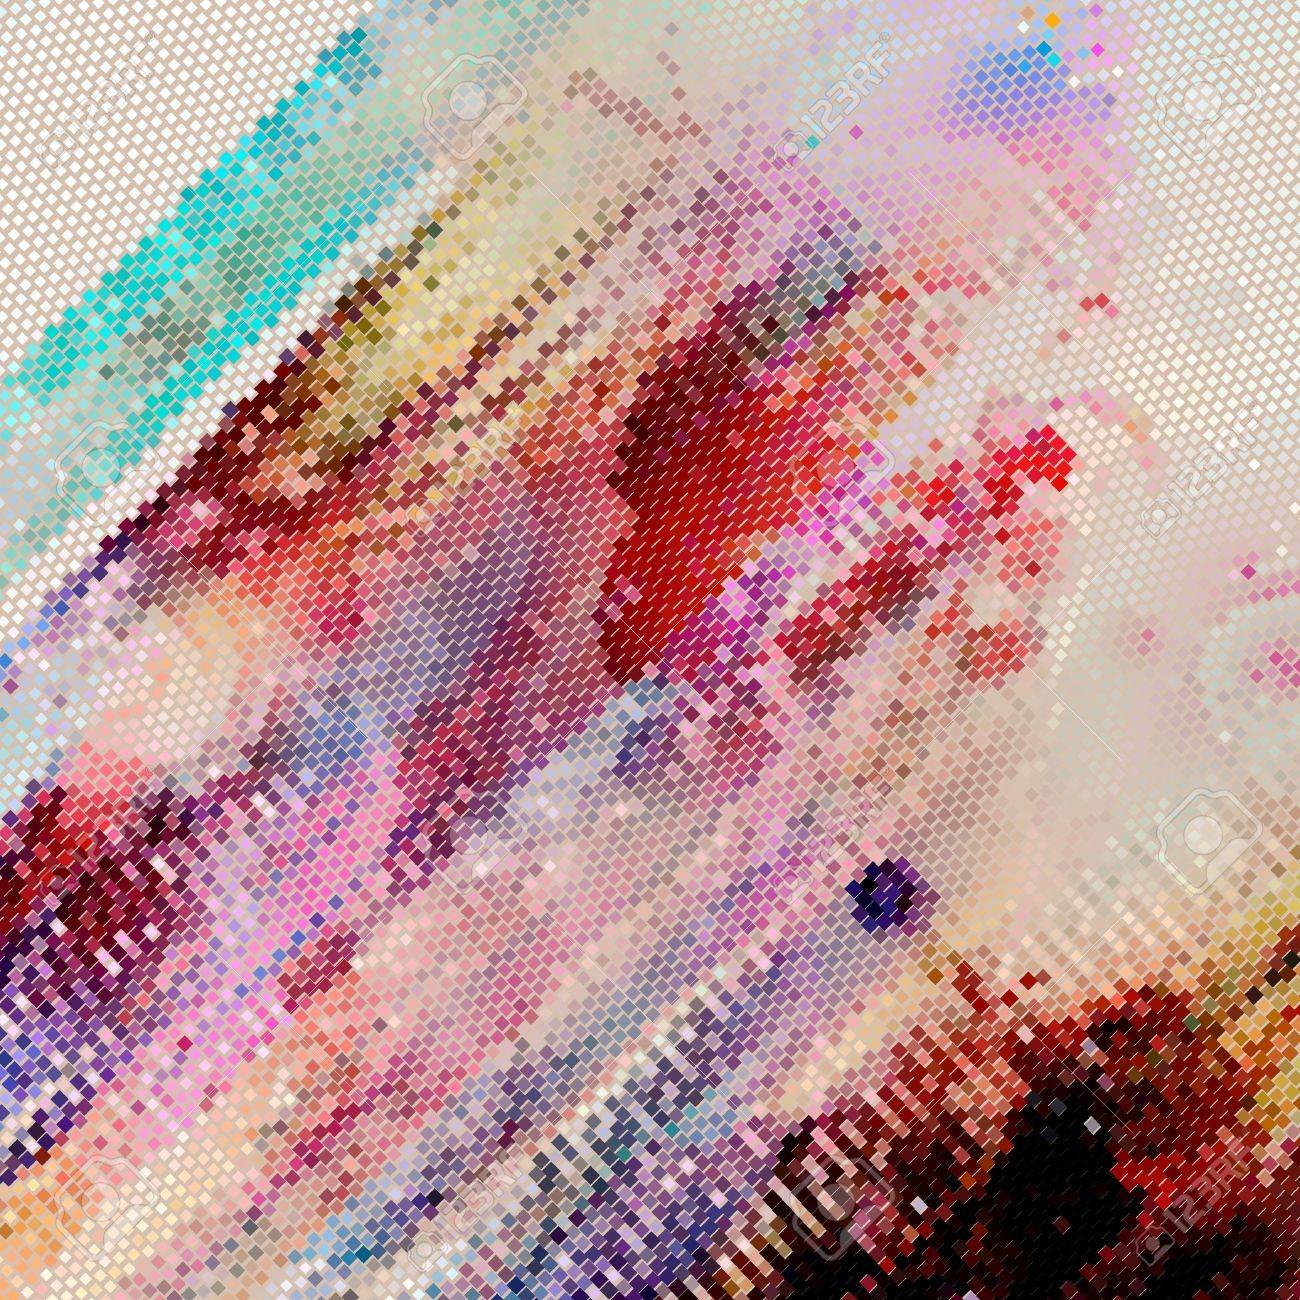 Abstract Background - 15052620